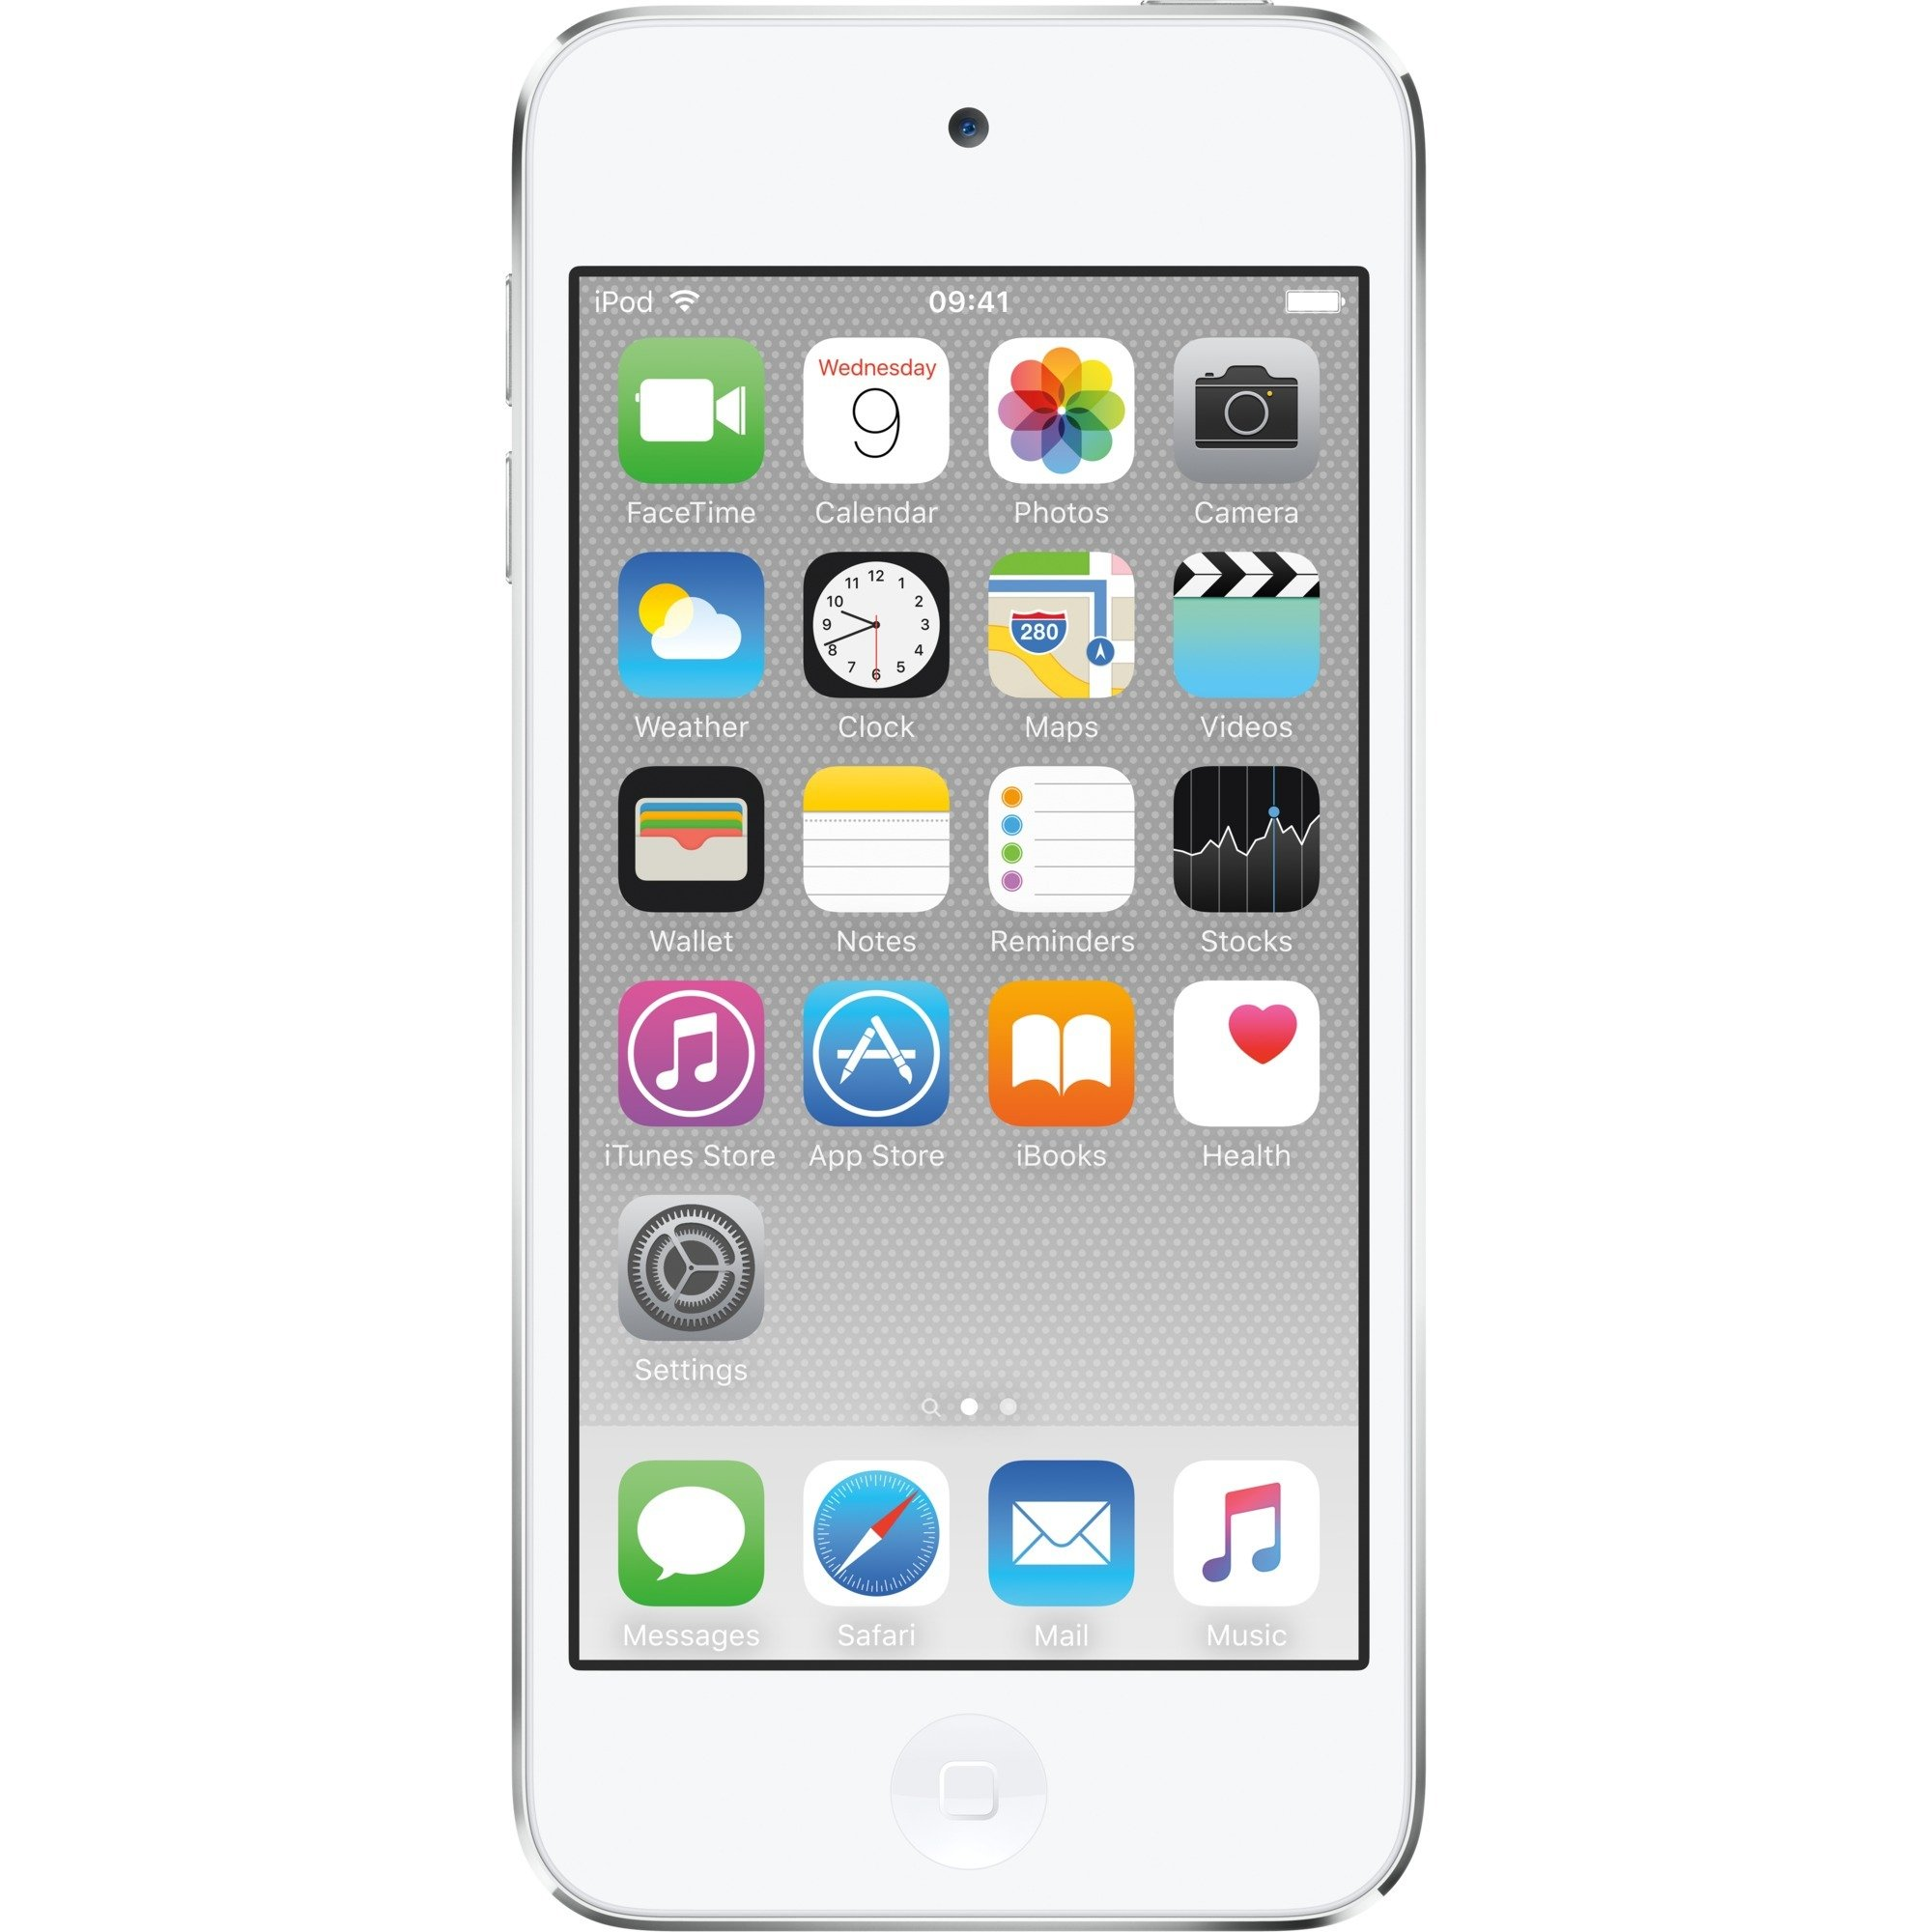 iPod touch 128GB Reproductor de MP4 Plata, Reproductor MVP